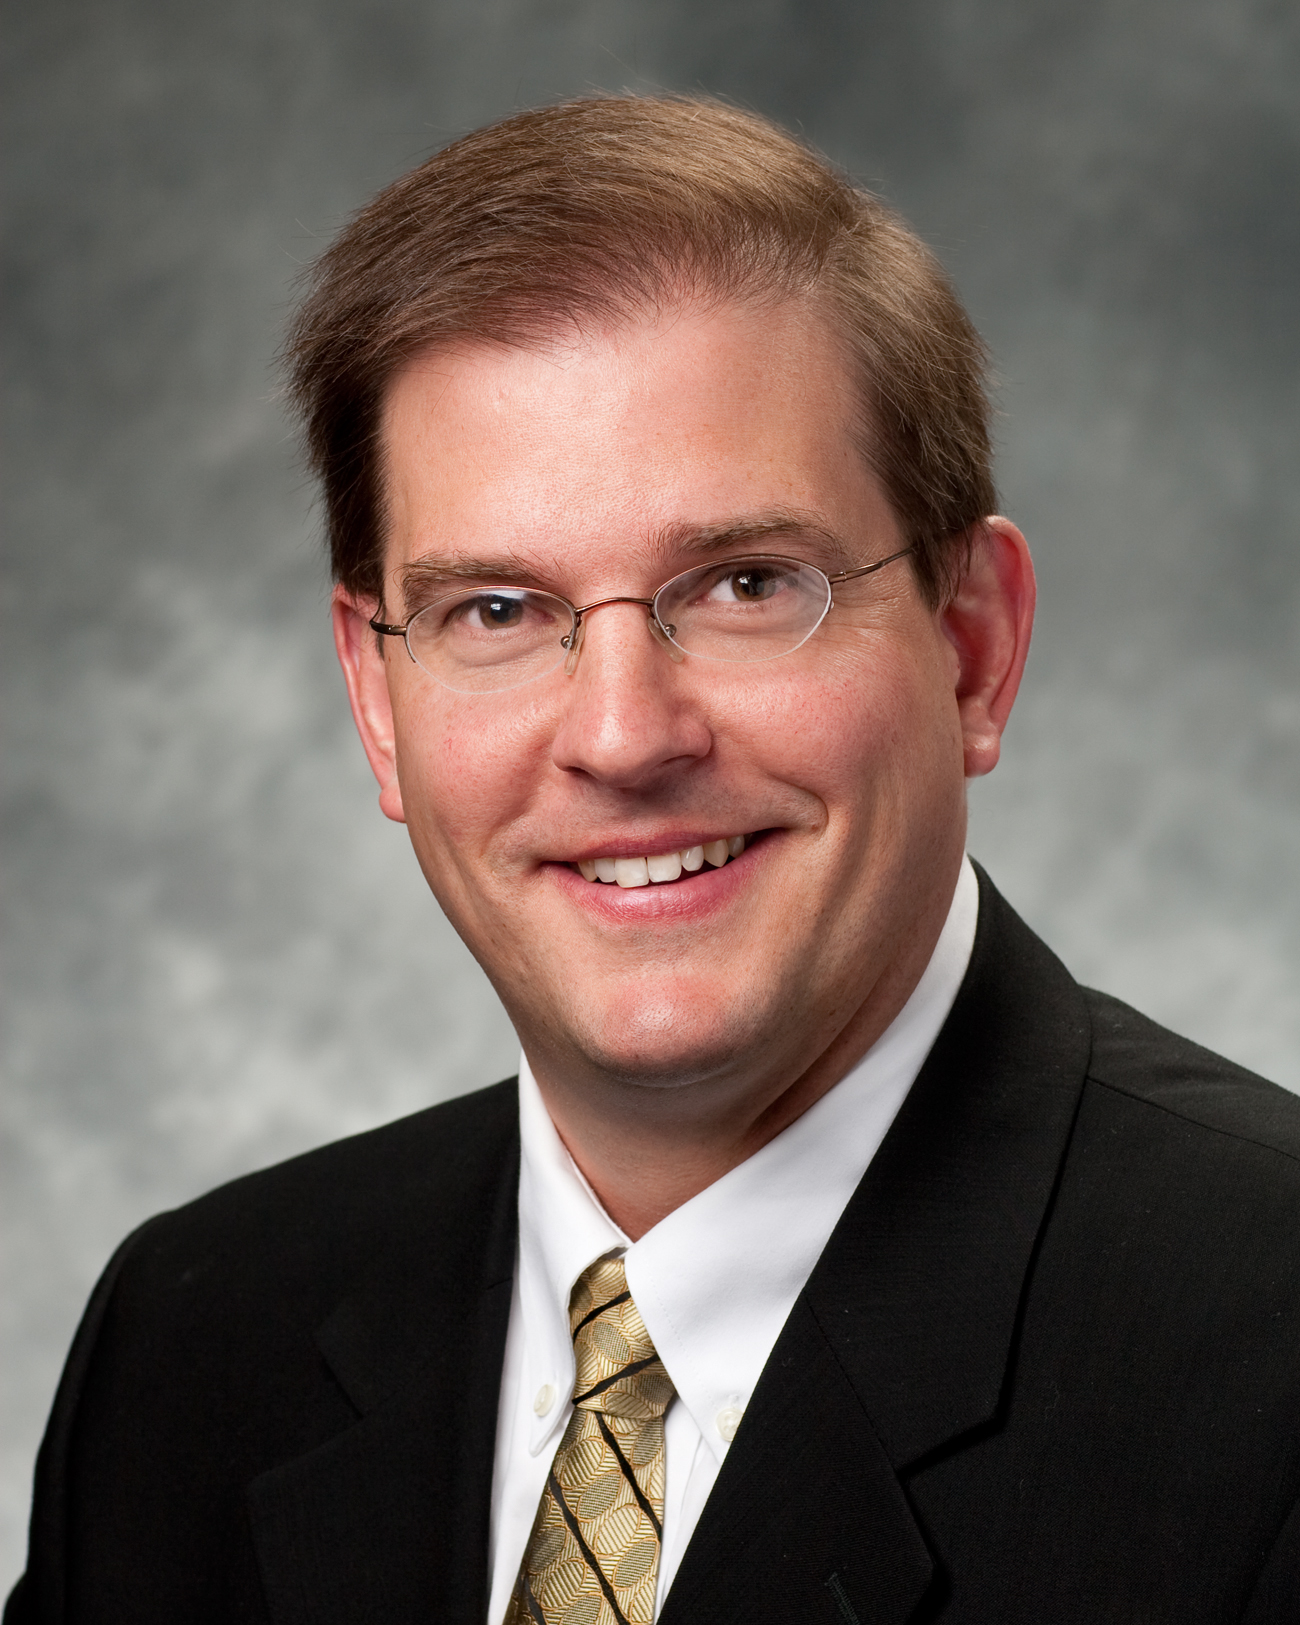 Dr. Nicholas Van Deelen, St. Luke's Chief Medical Officer & Vice President of Medical Affairs